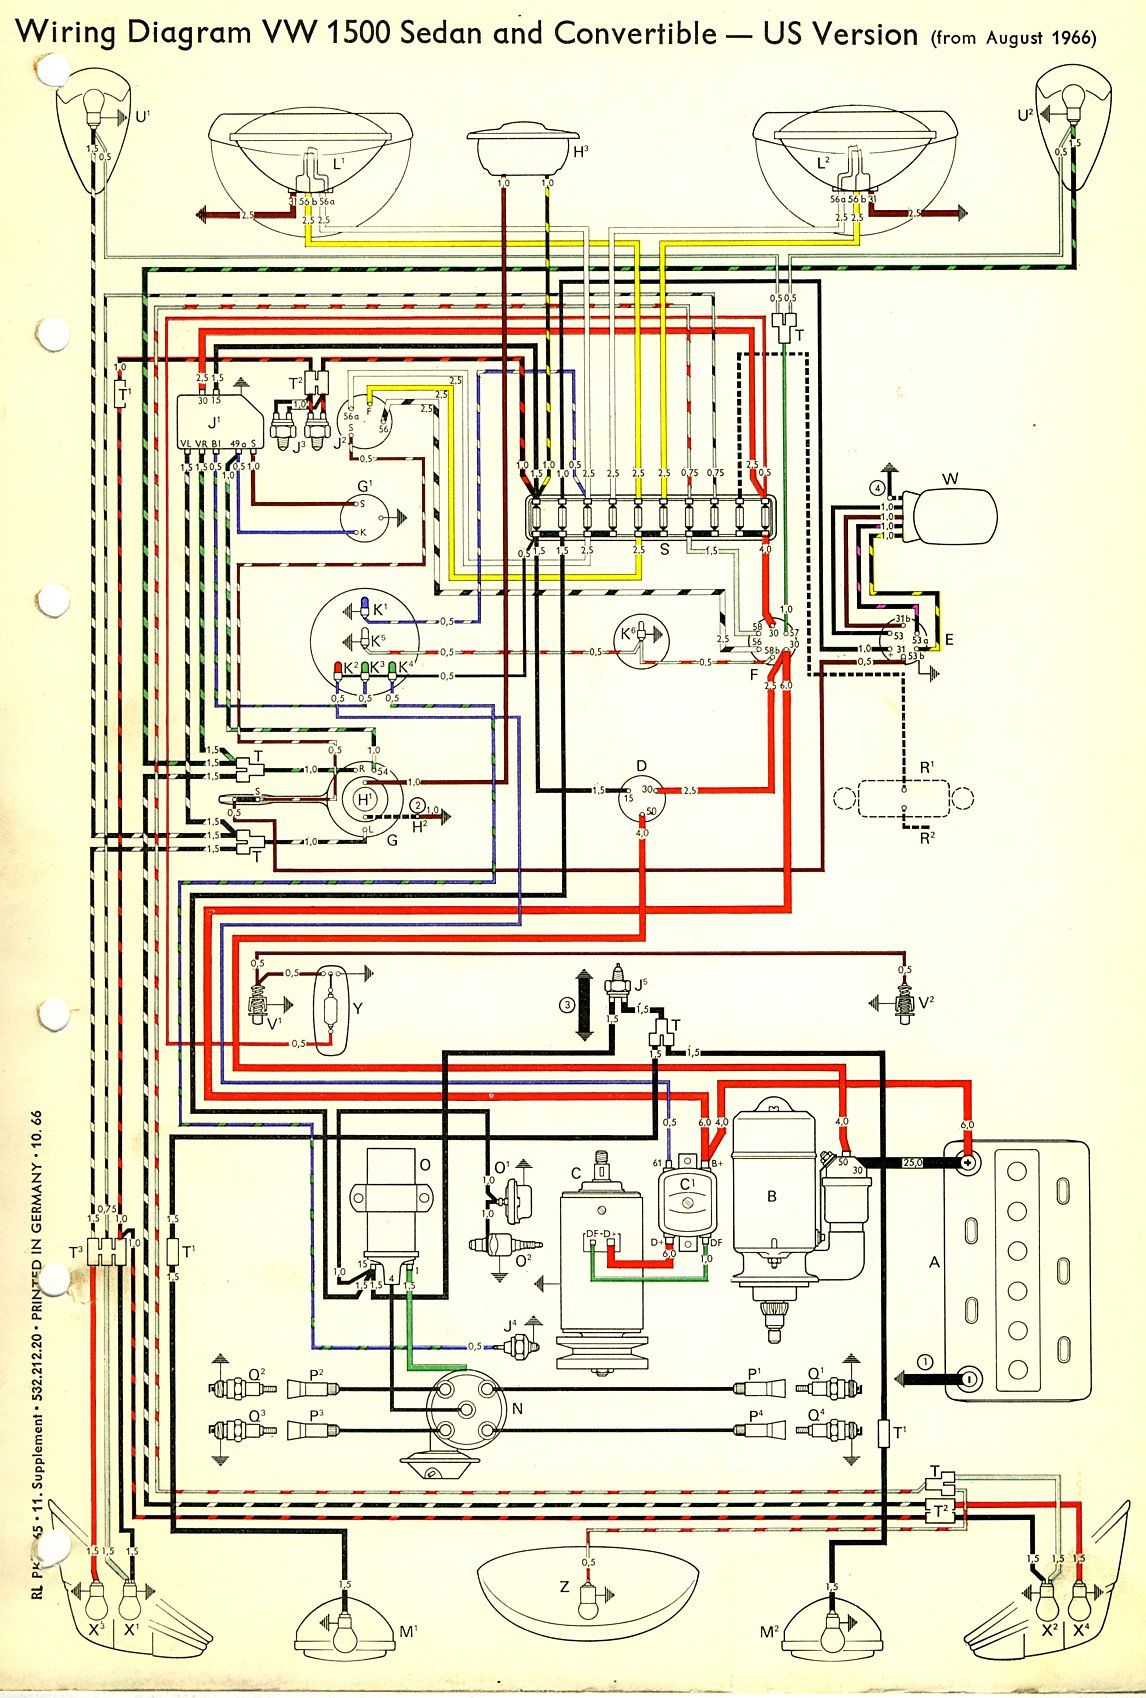 1adf990c0efb617c789fdd21338448b0 1967 beetle wiring diagram (usa) thegoldenbug com best 1967 vw wiring harness for 1967 vw beetle at gsmx.co